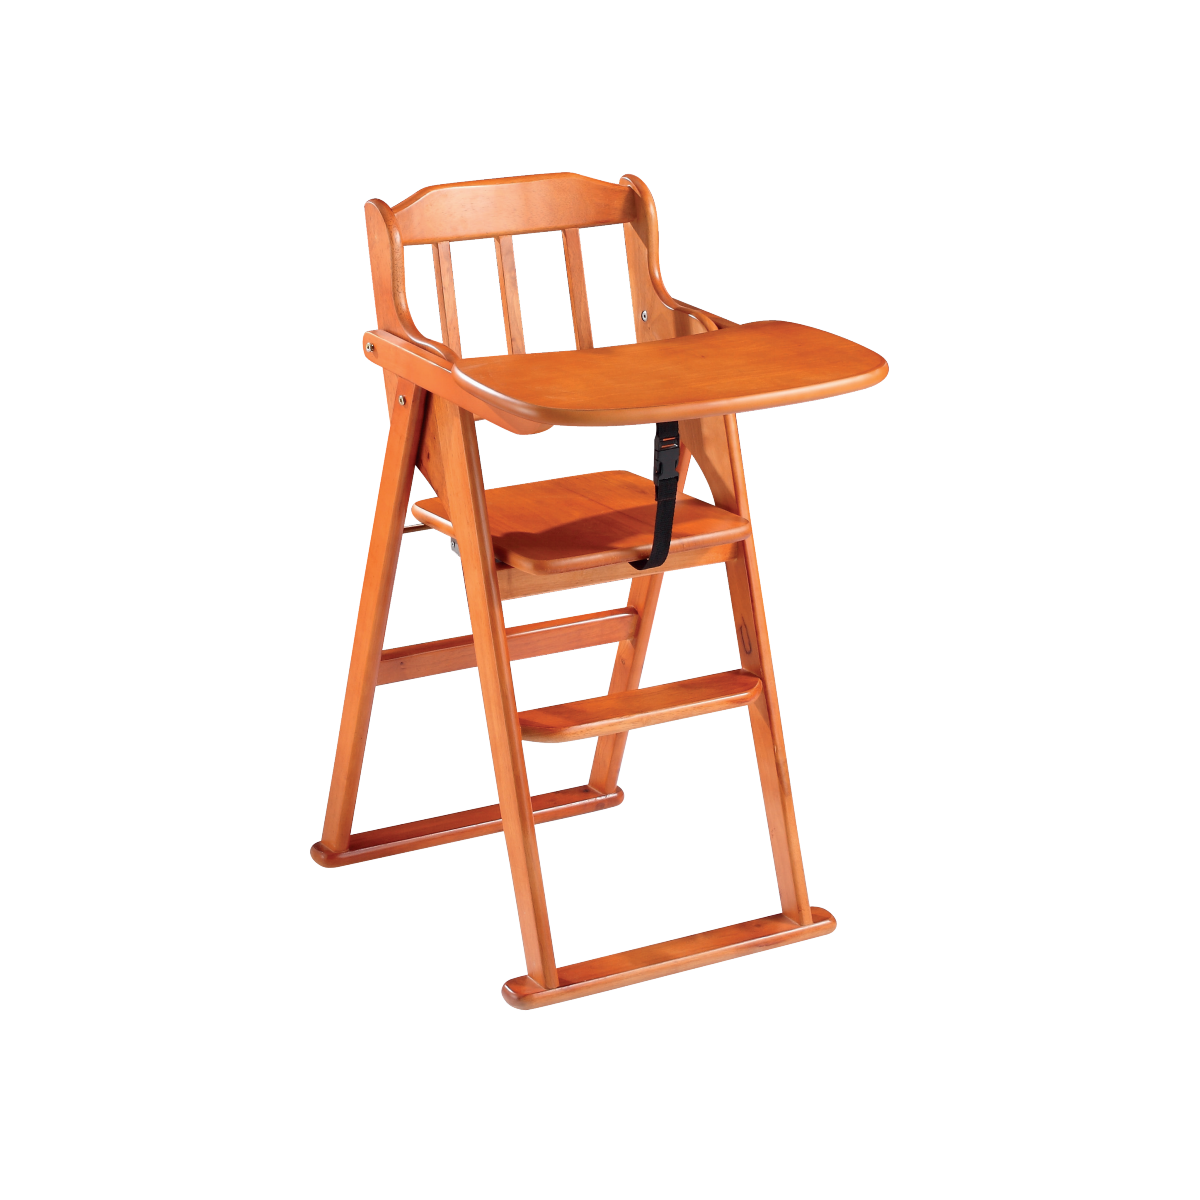 High Quality Solid Wood Baby Feeding Dining High Chair